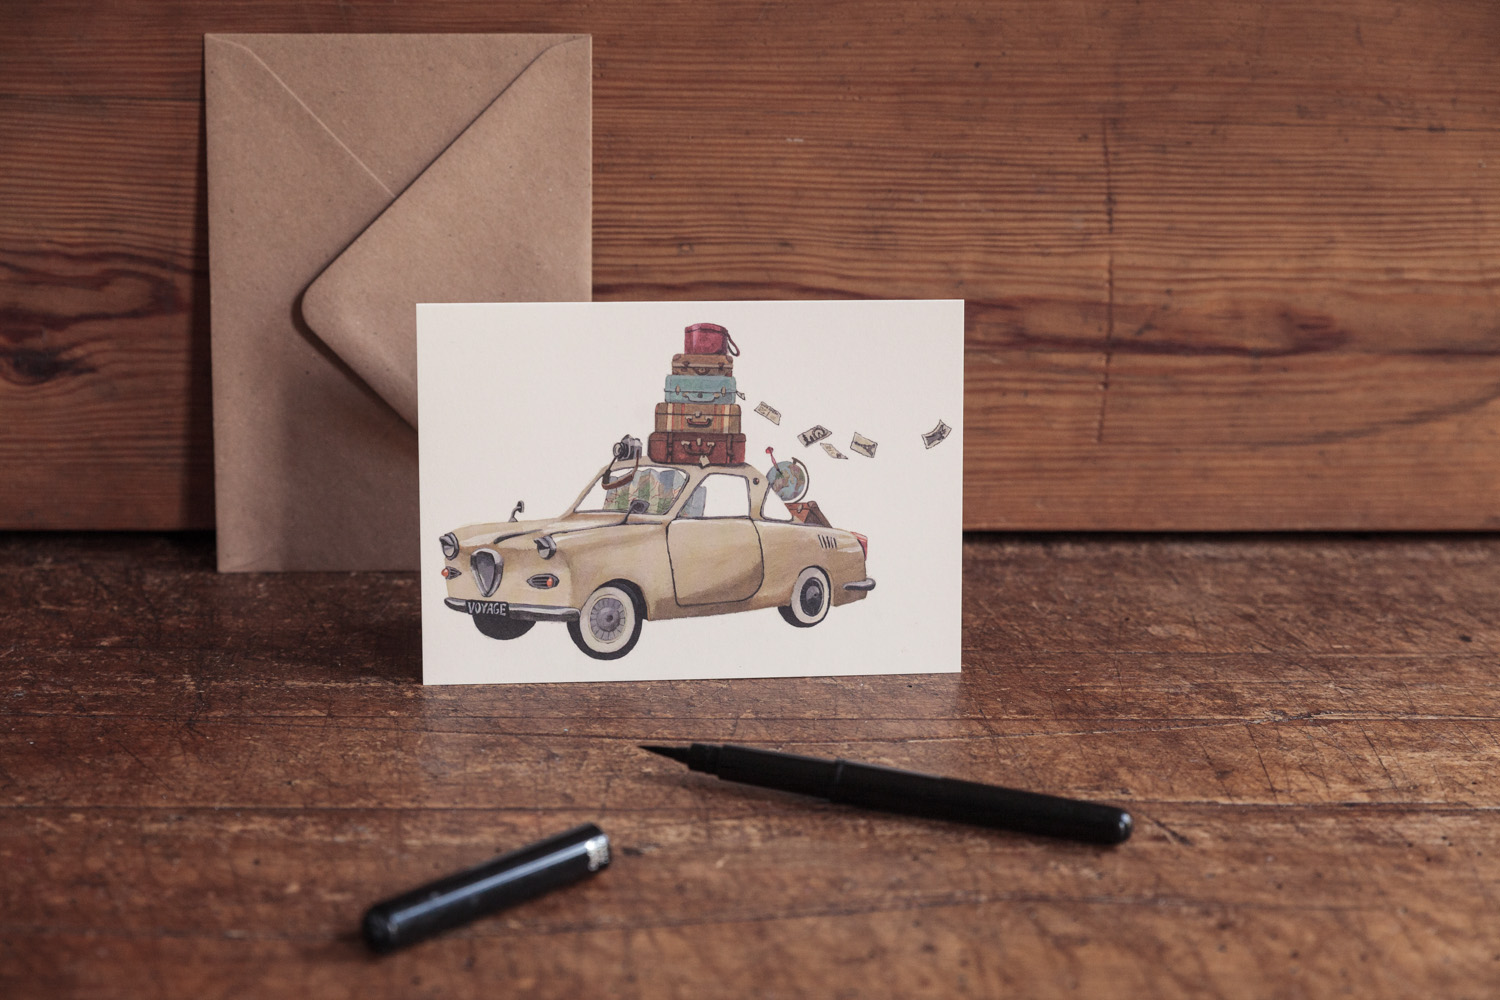 This one is one of my favorites, I would love to go on a voyage with an oldtimer sometime...